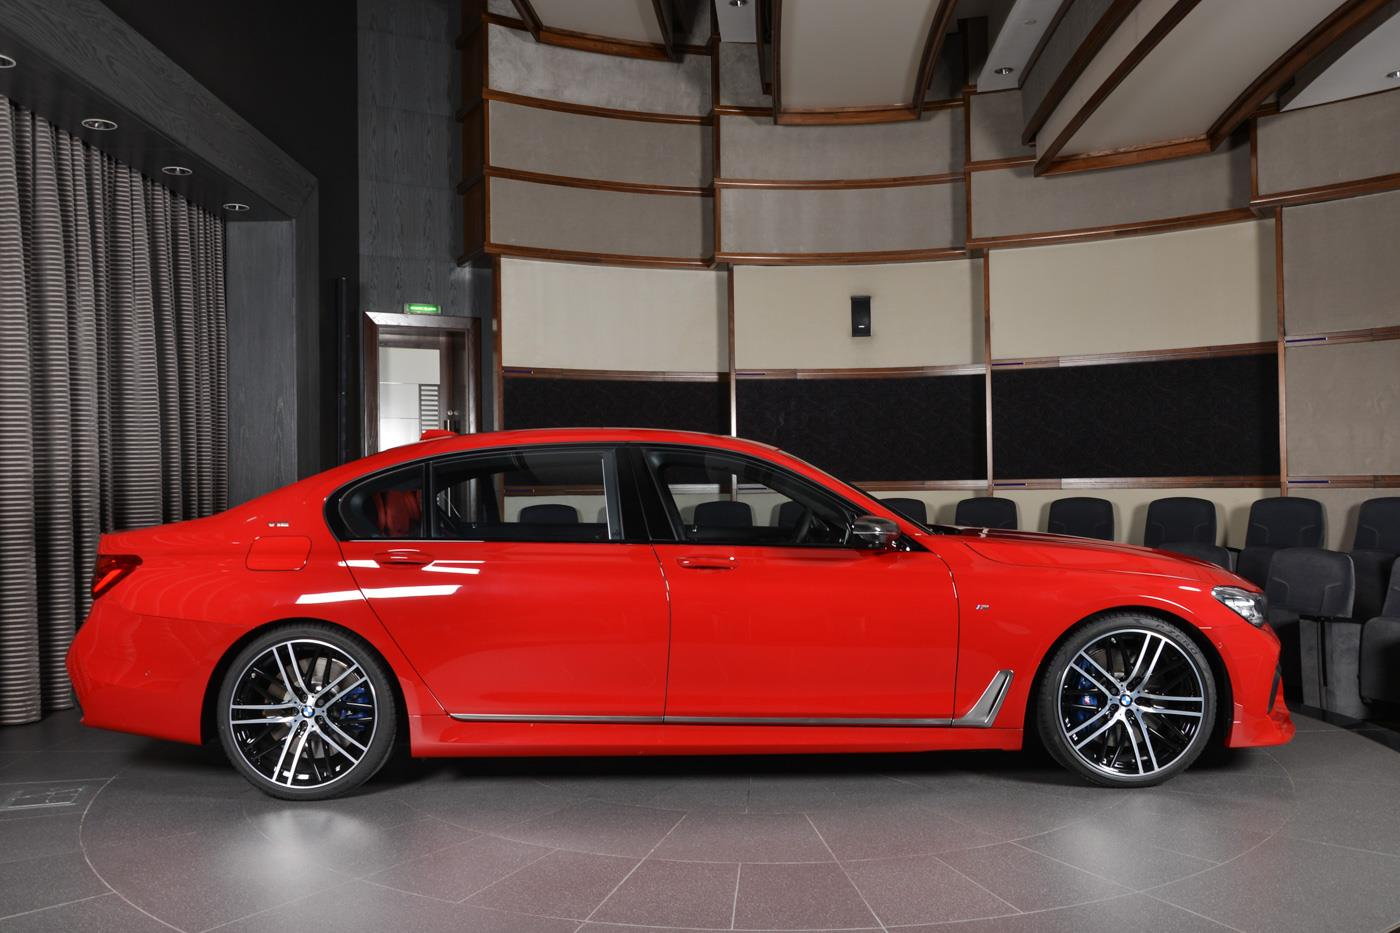 Imola Red Bmw M760li In Abu Dhabi Has Everything